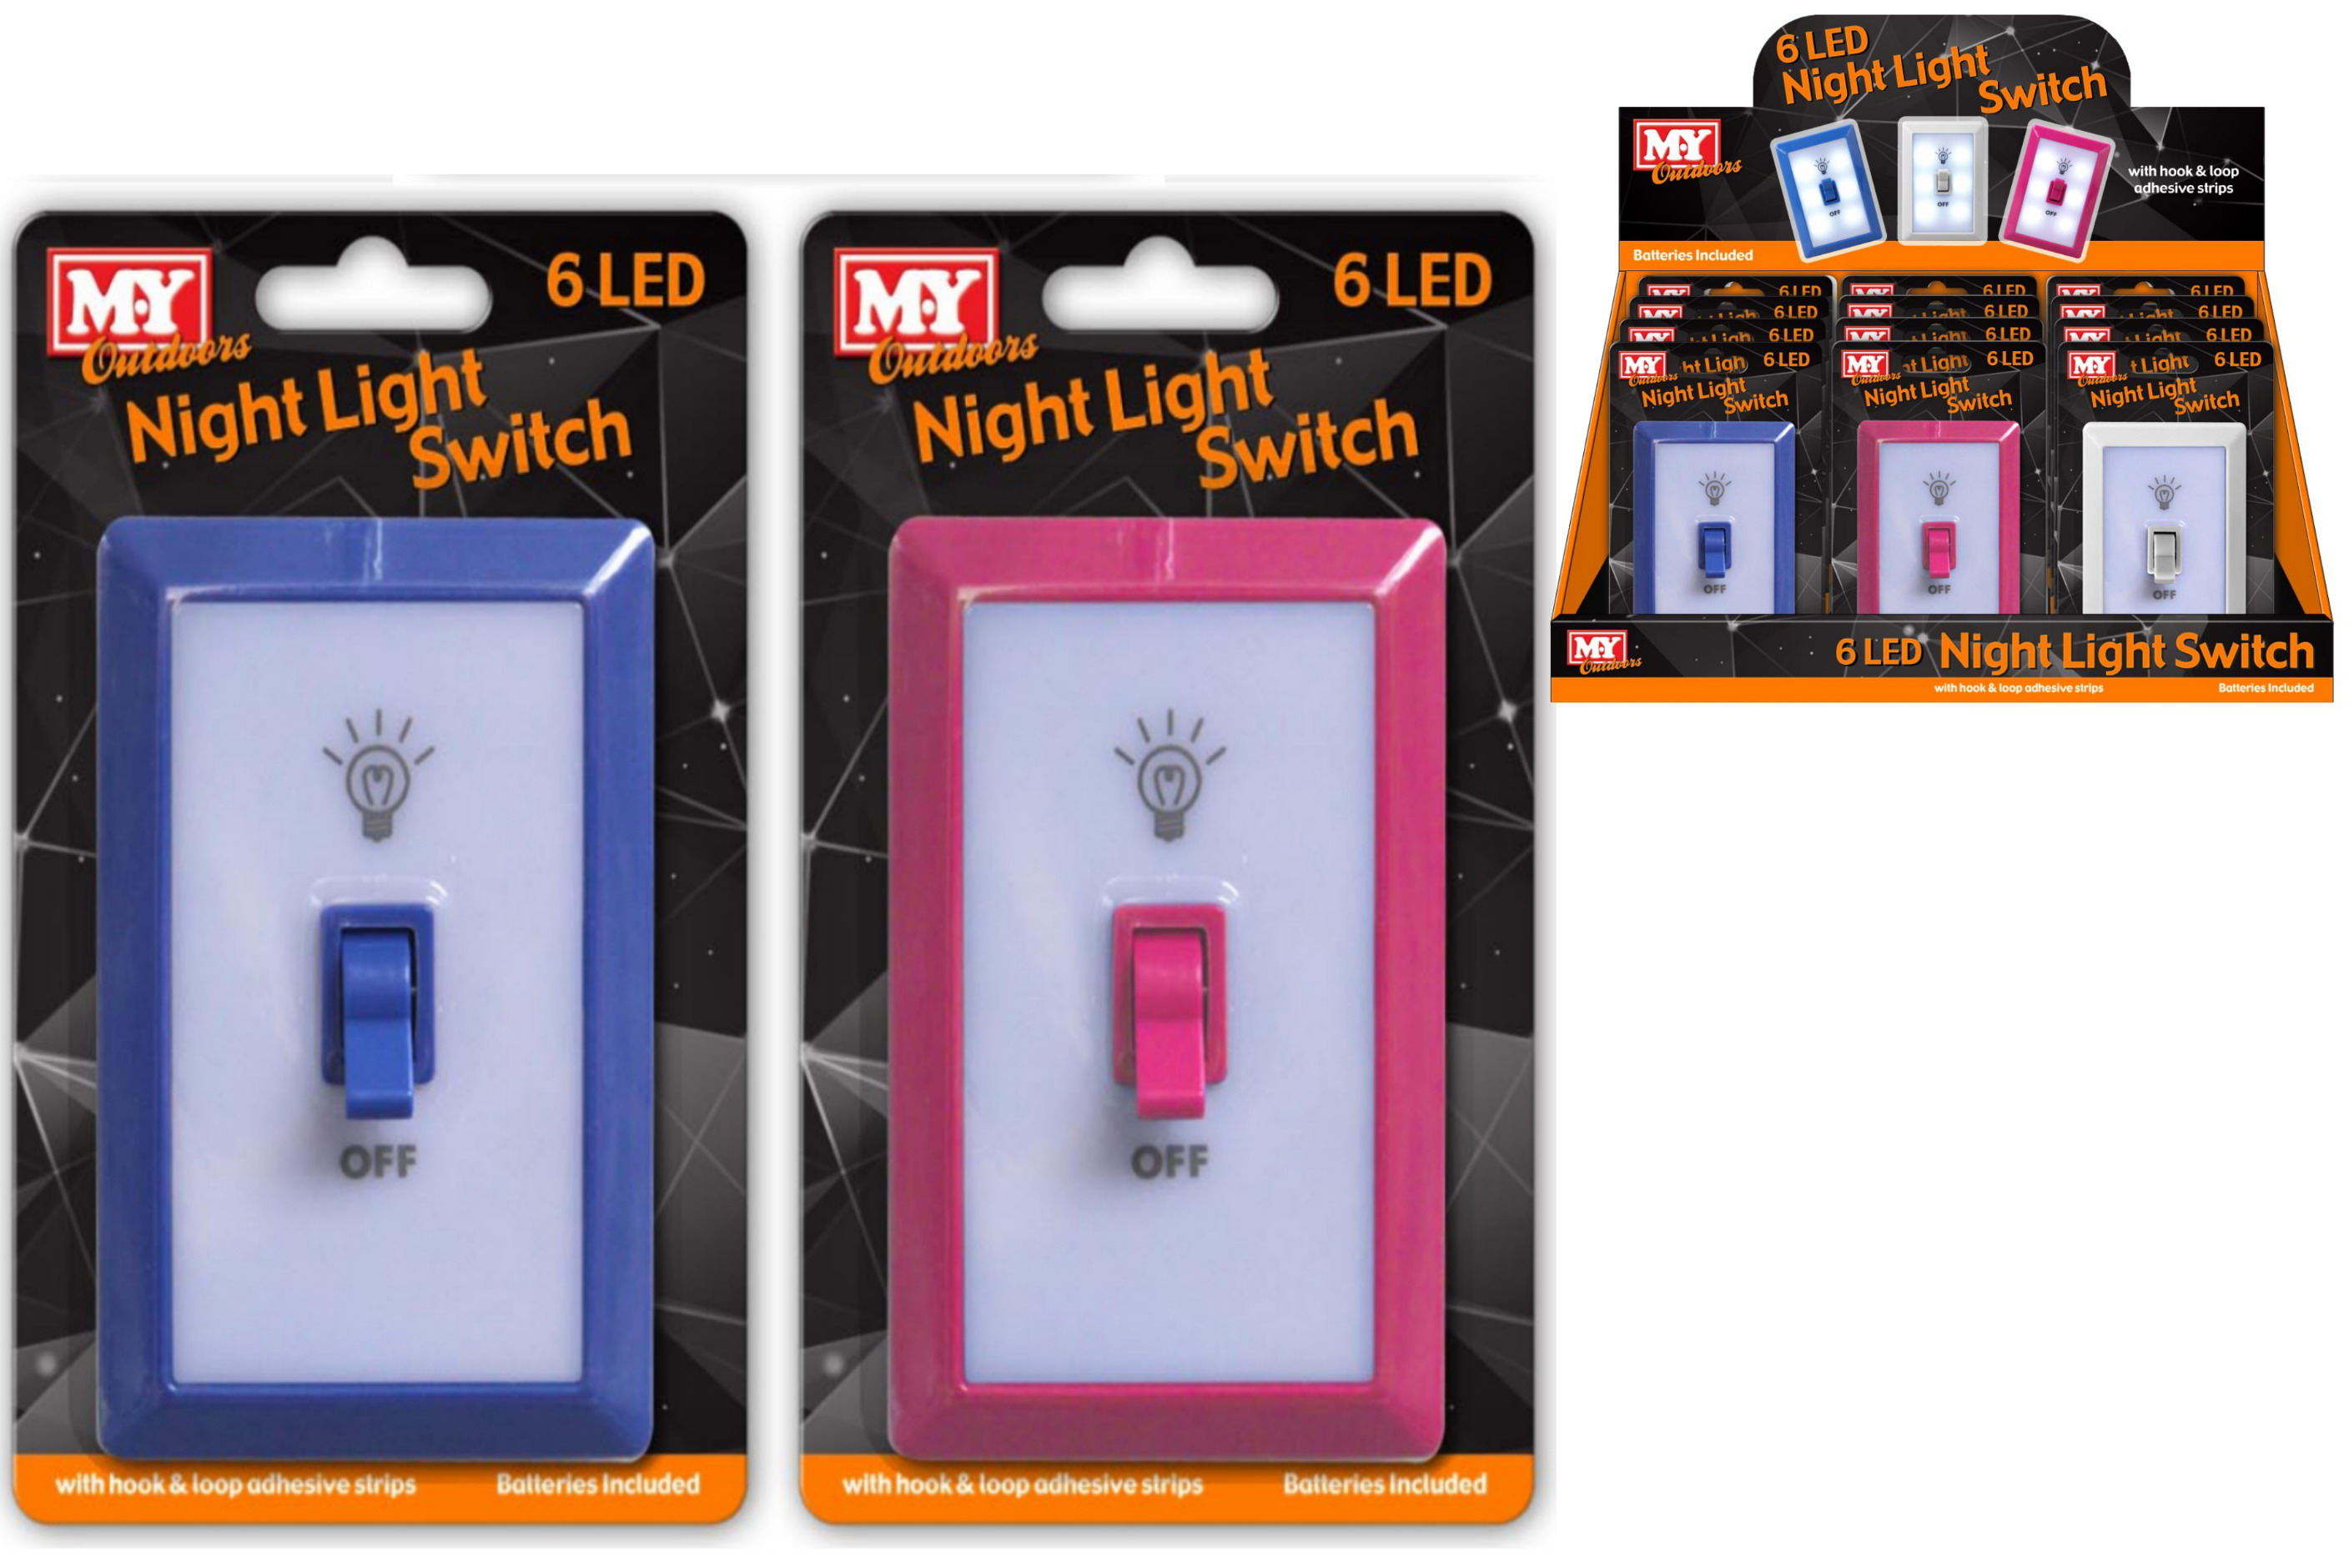 6 Led Night Light Switch With Battery - Blister/Display